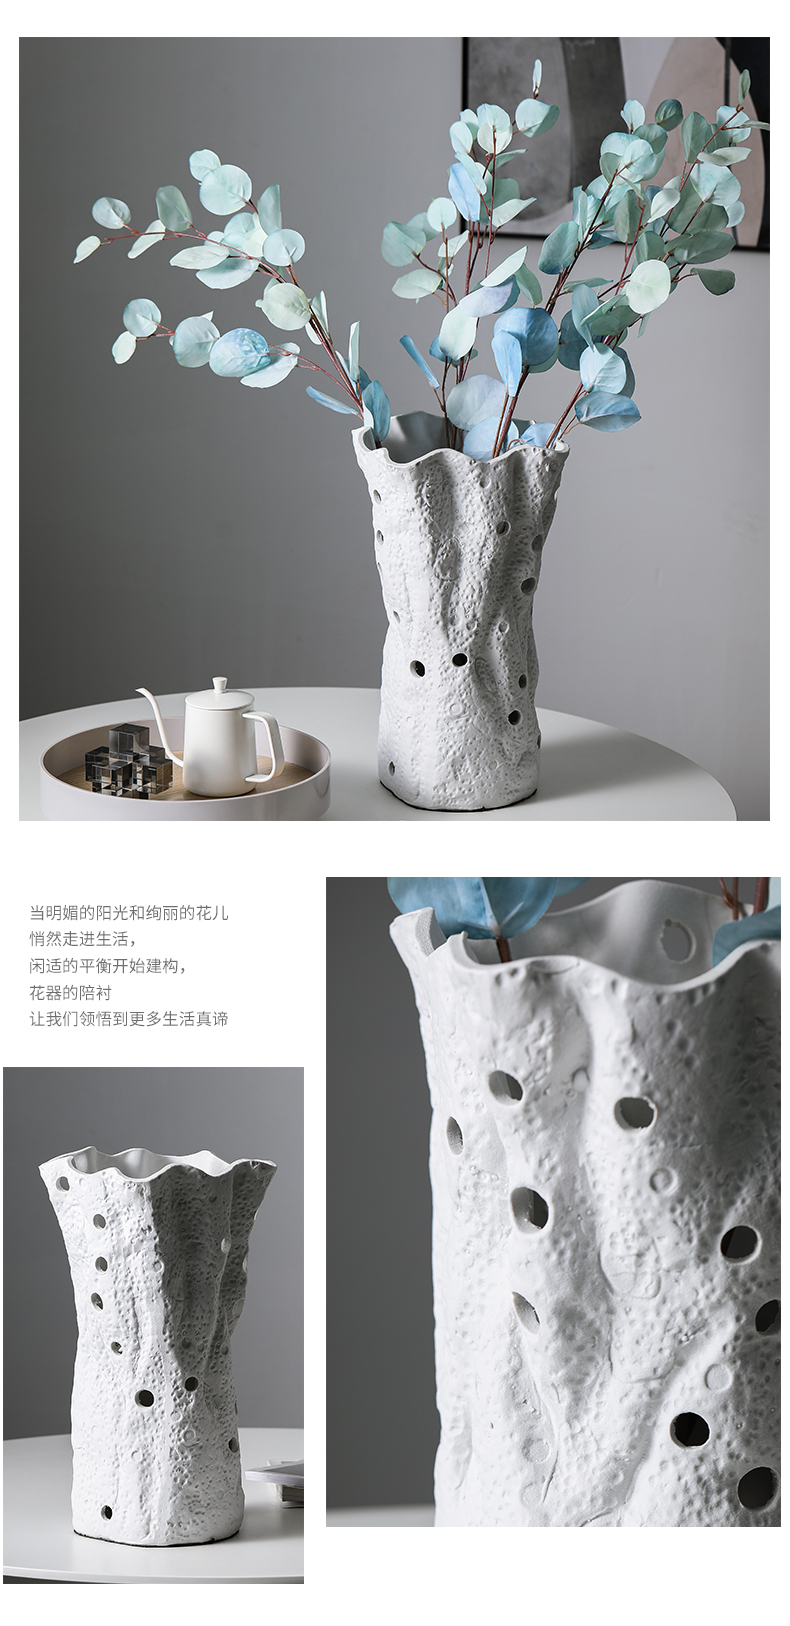 Rain tong household soft outfit stylist ceramics room the opened a gift decoration decorative art flower implement web celebrity shop